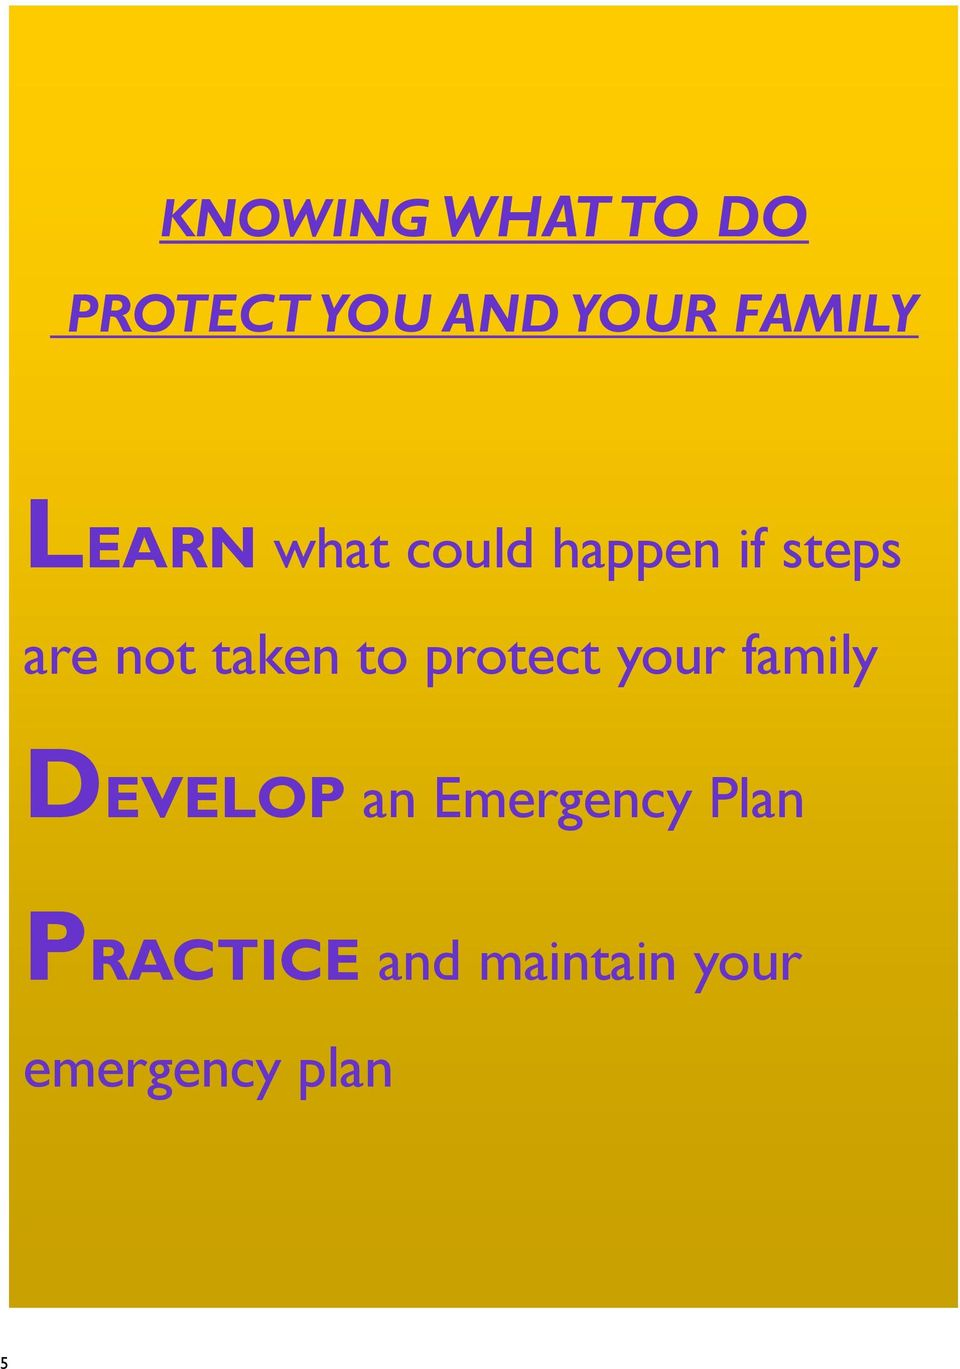 to protect your family DEVELOP an Emergency